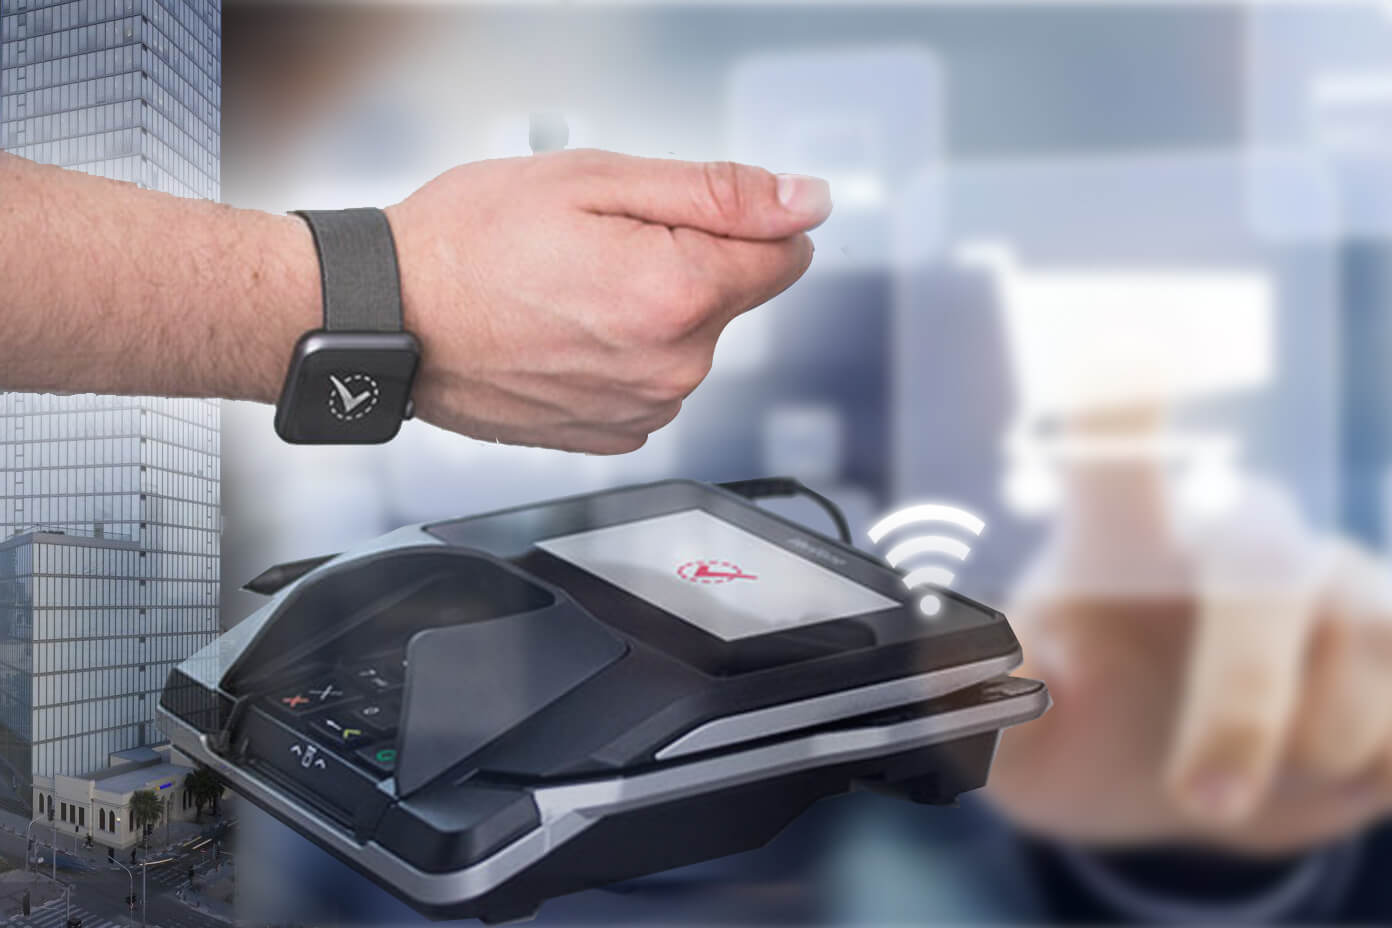 Swedish Bank Moves towards Wearable Payment Technology